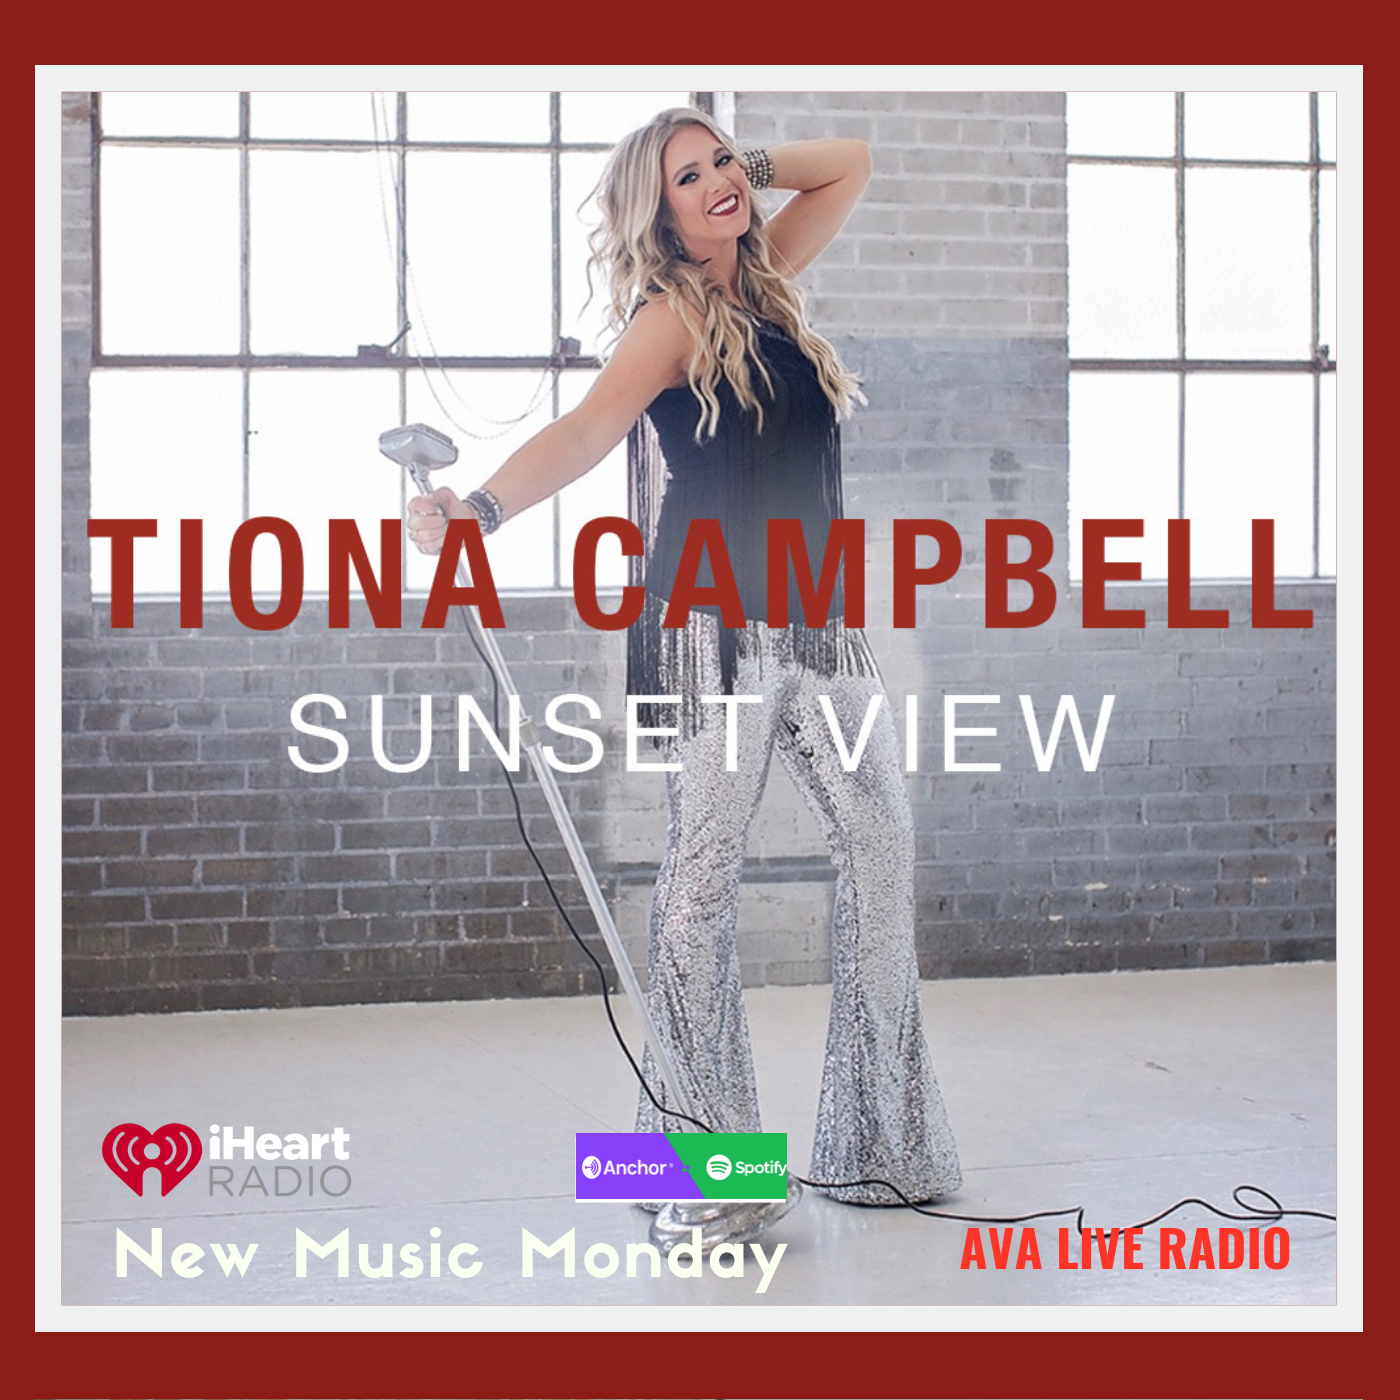 Tiona Campbell avaliveradio new music monday.png